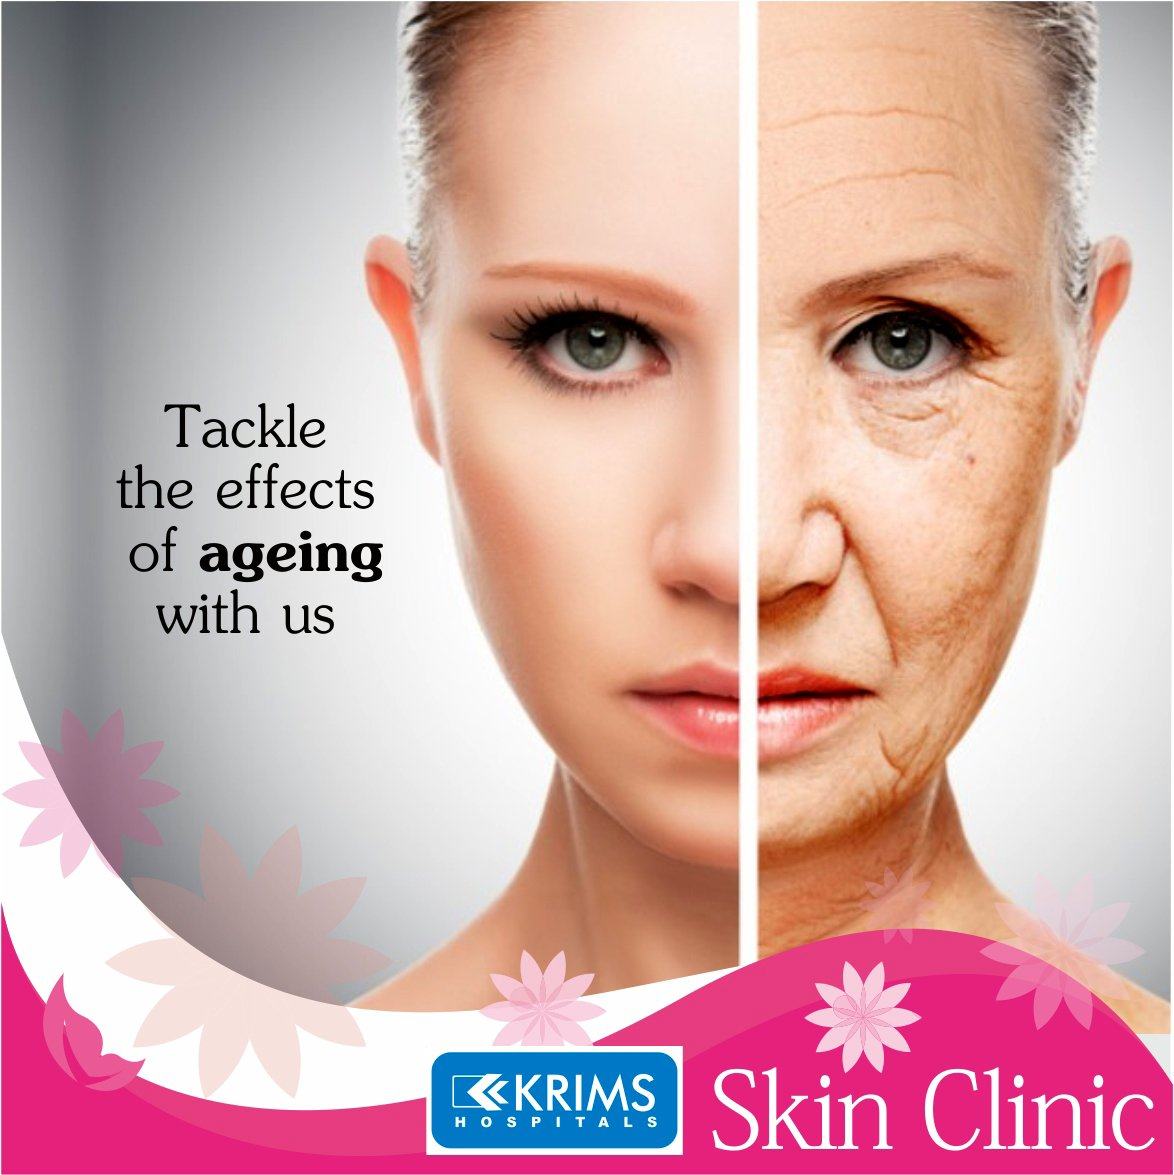 Youre Never Too Old for Acne